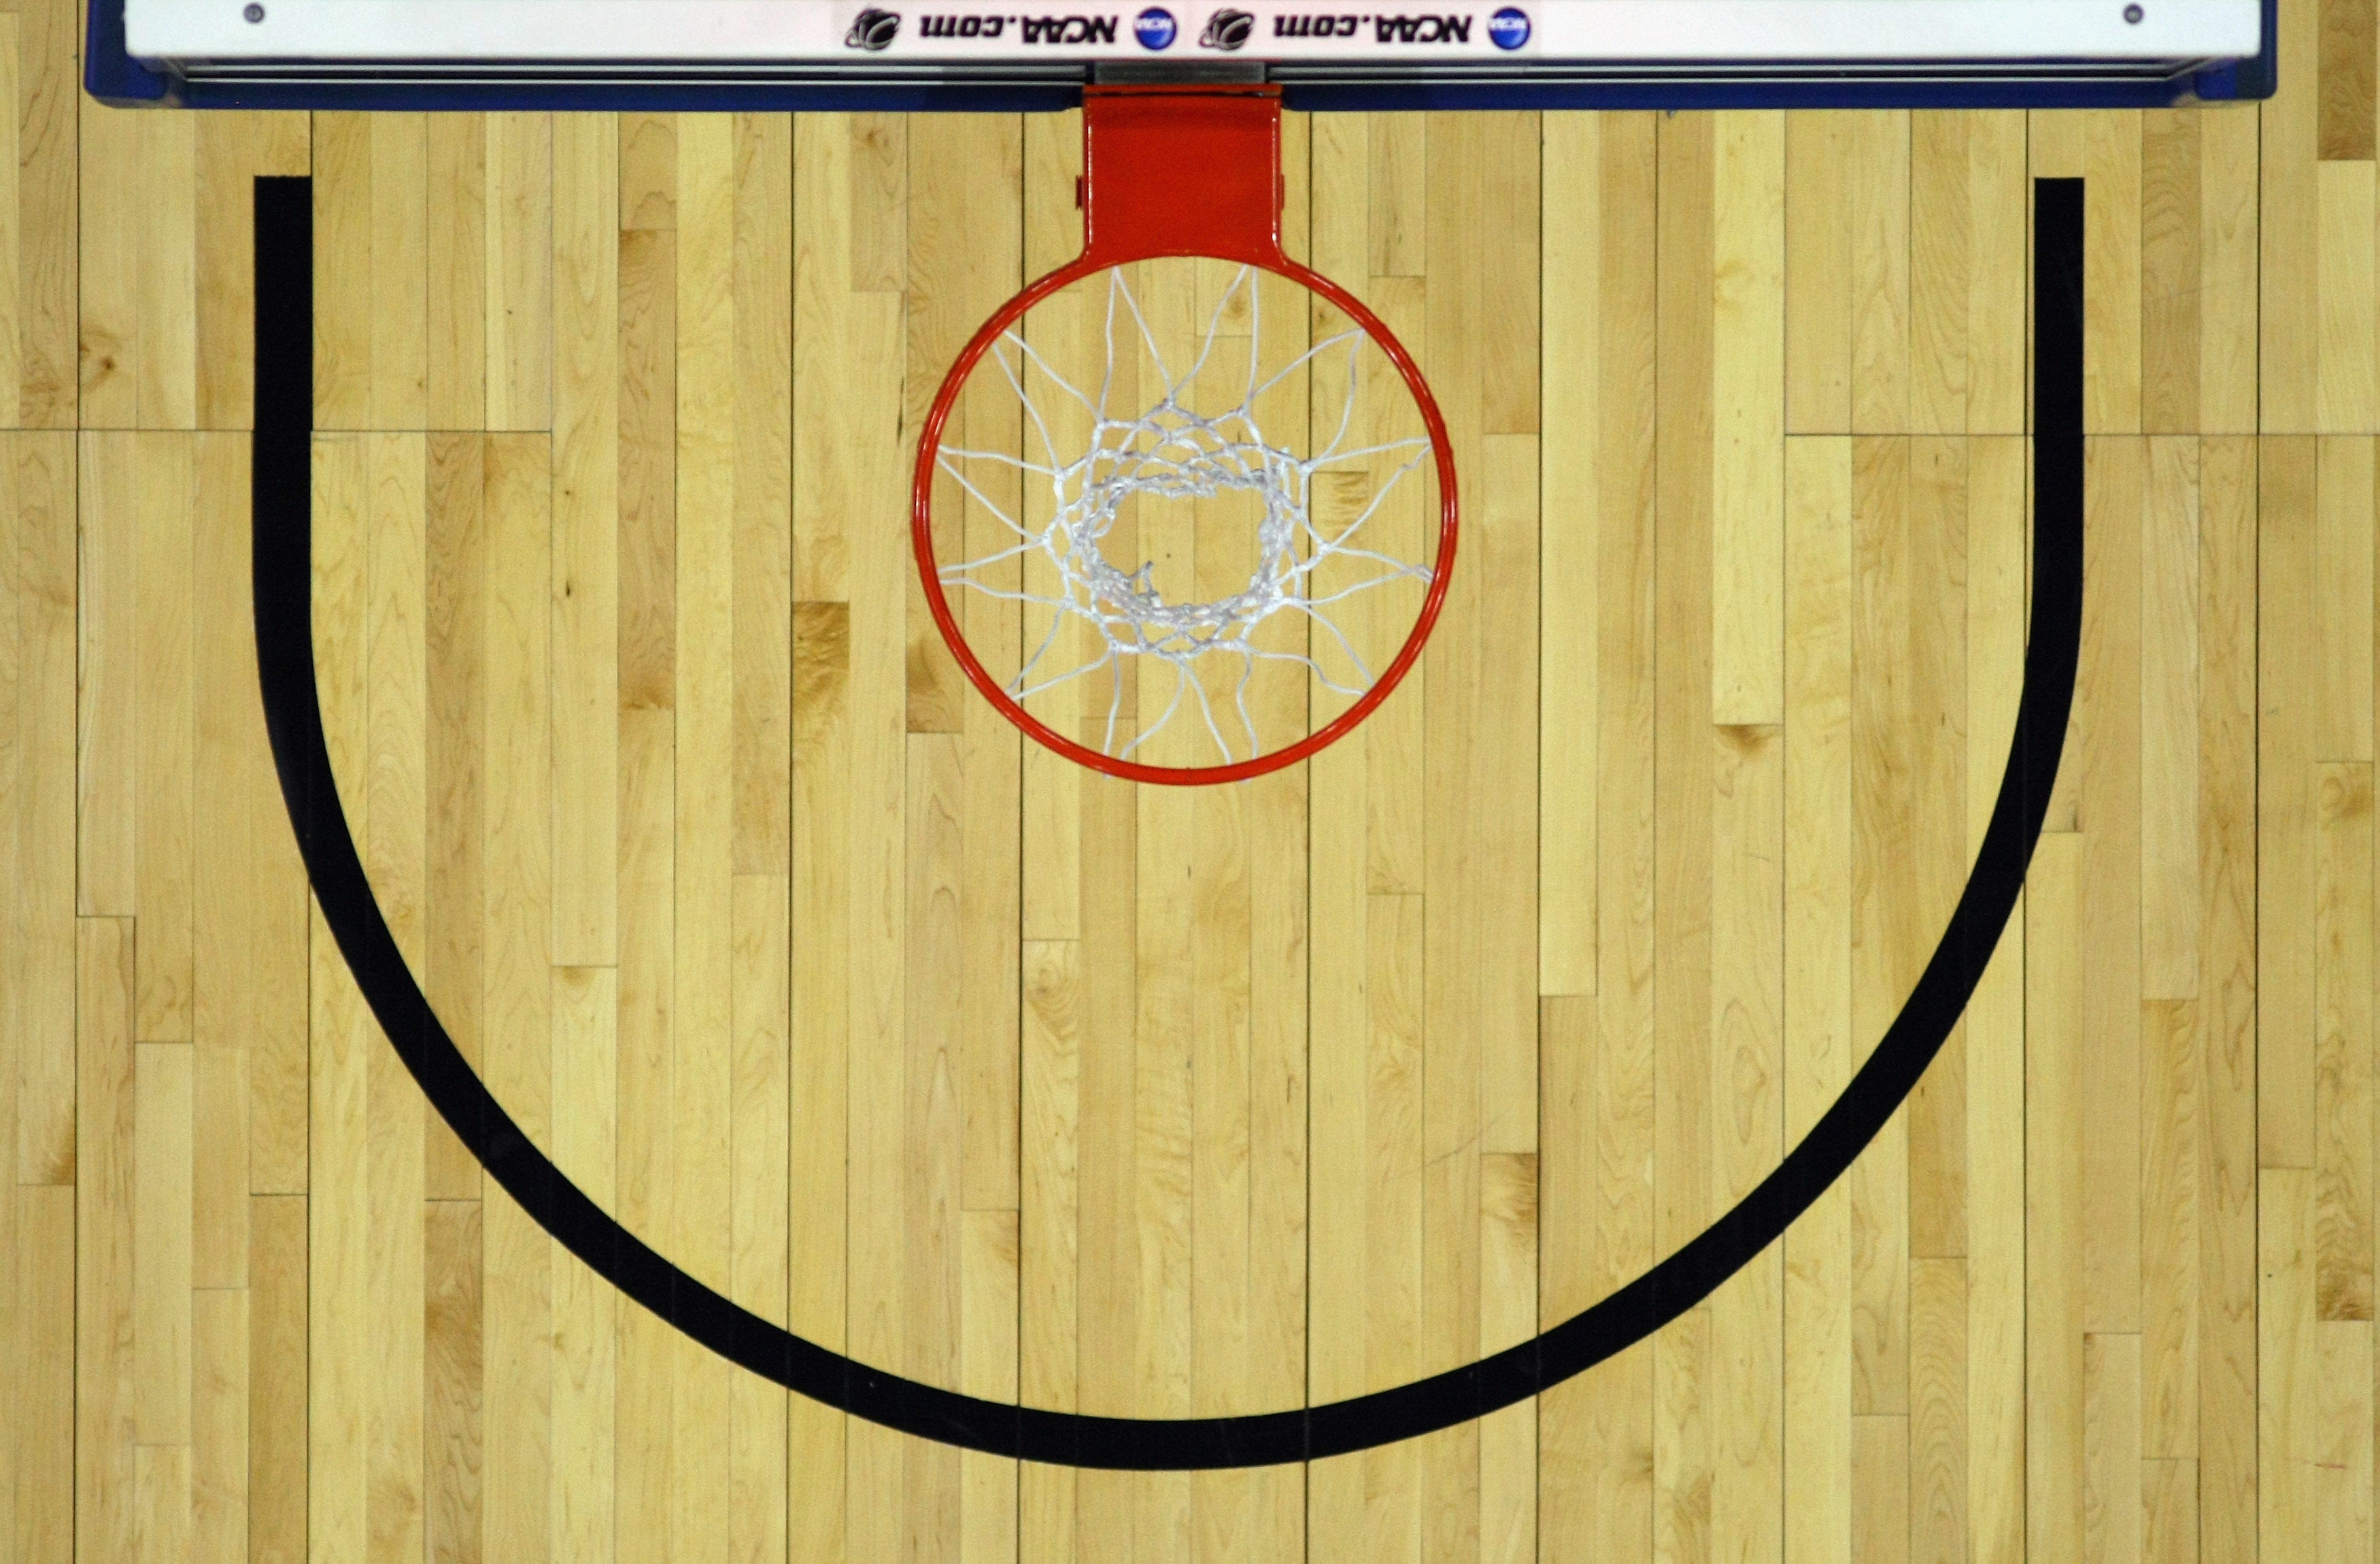 An overhead view of the basket from the second round of the NCAA Men's Basketball Tournament